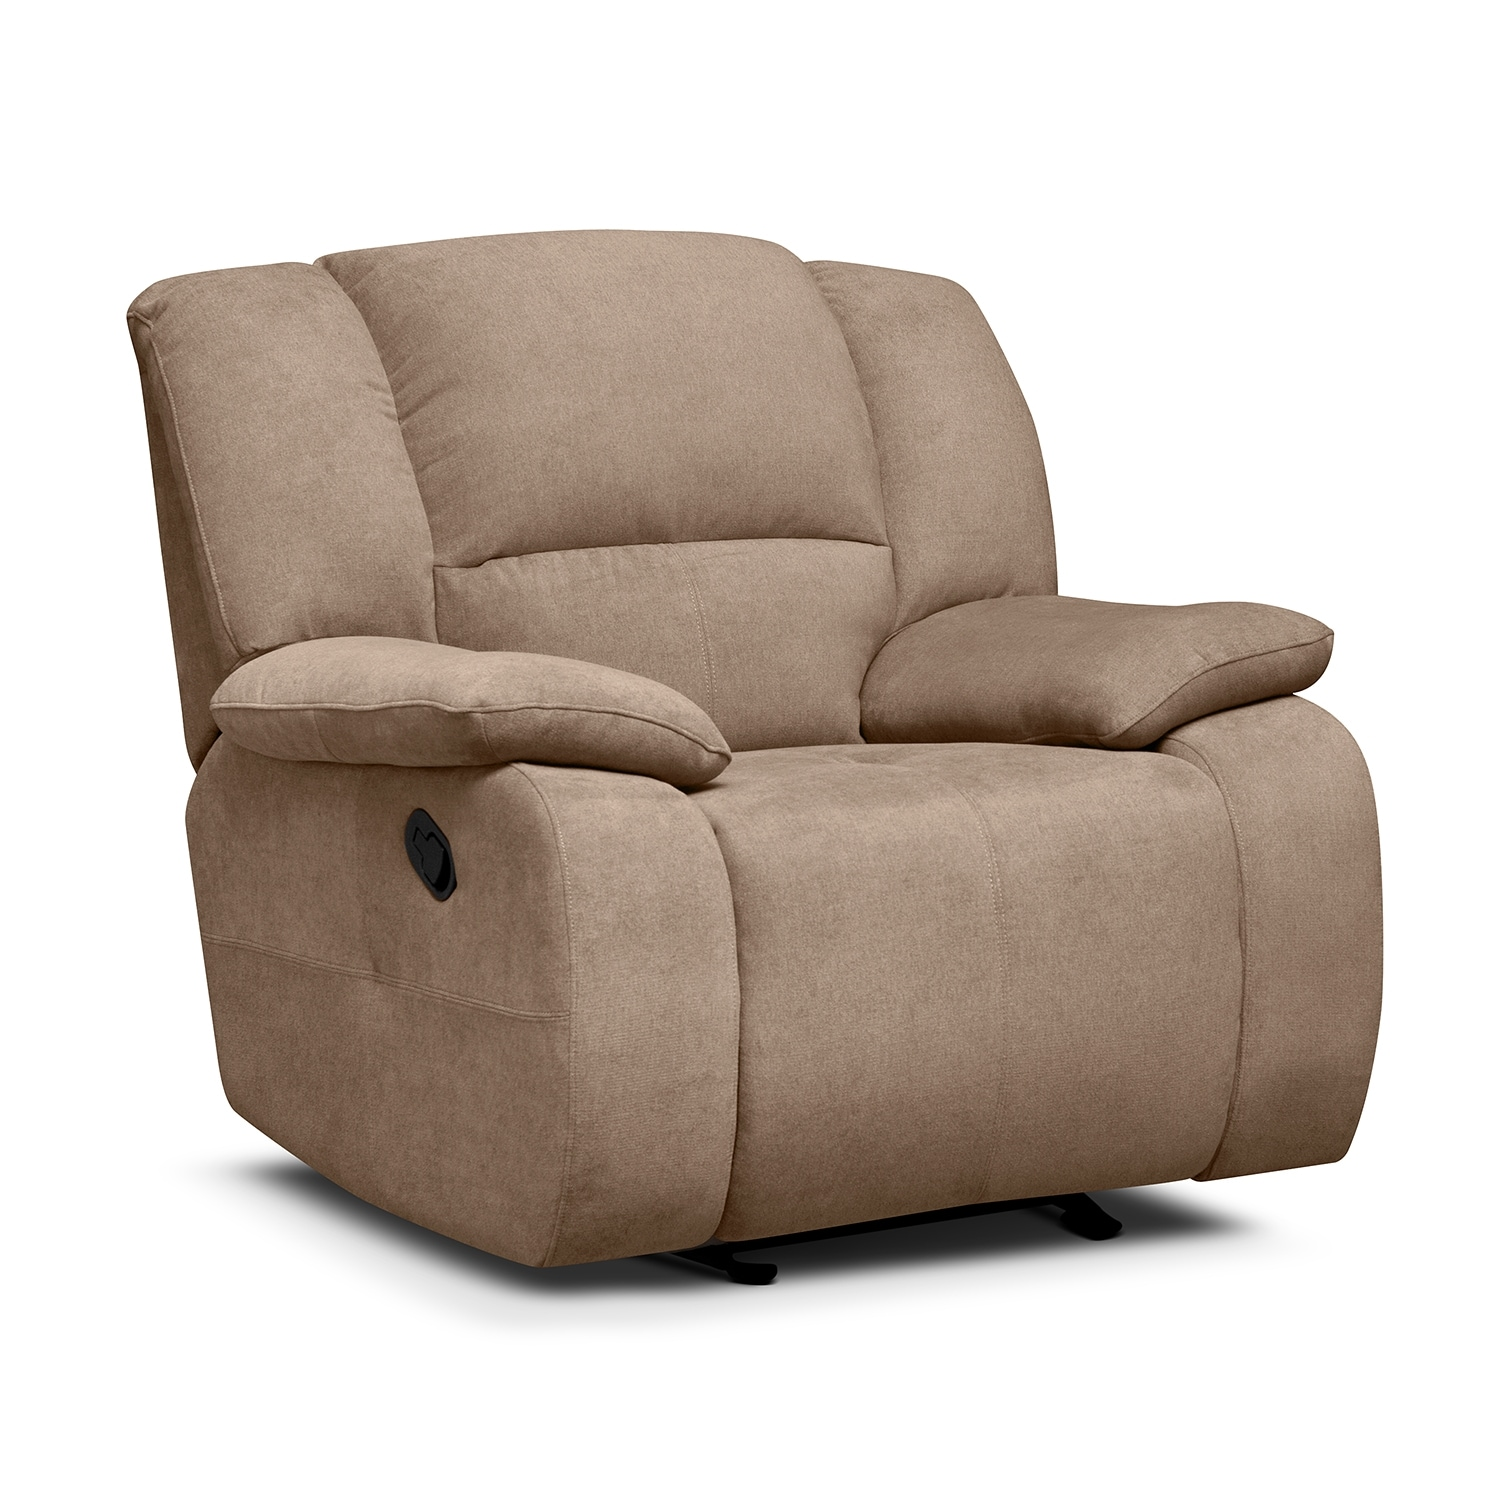 Living Room Furniture - Destin Beige Glider Recliner